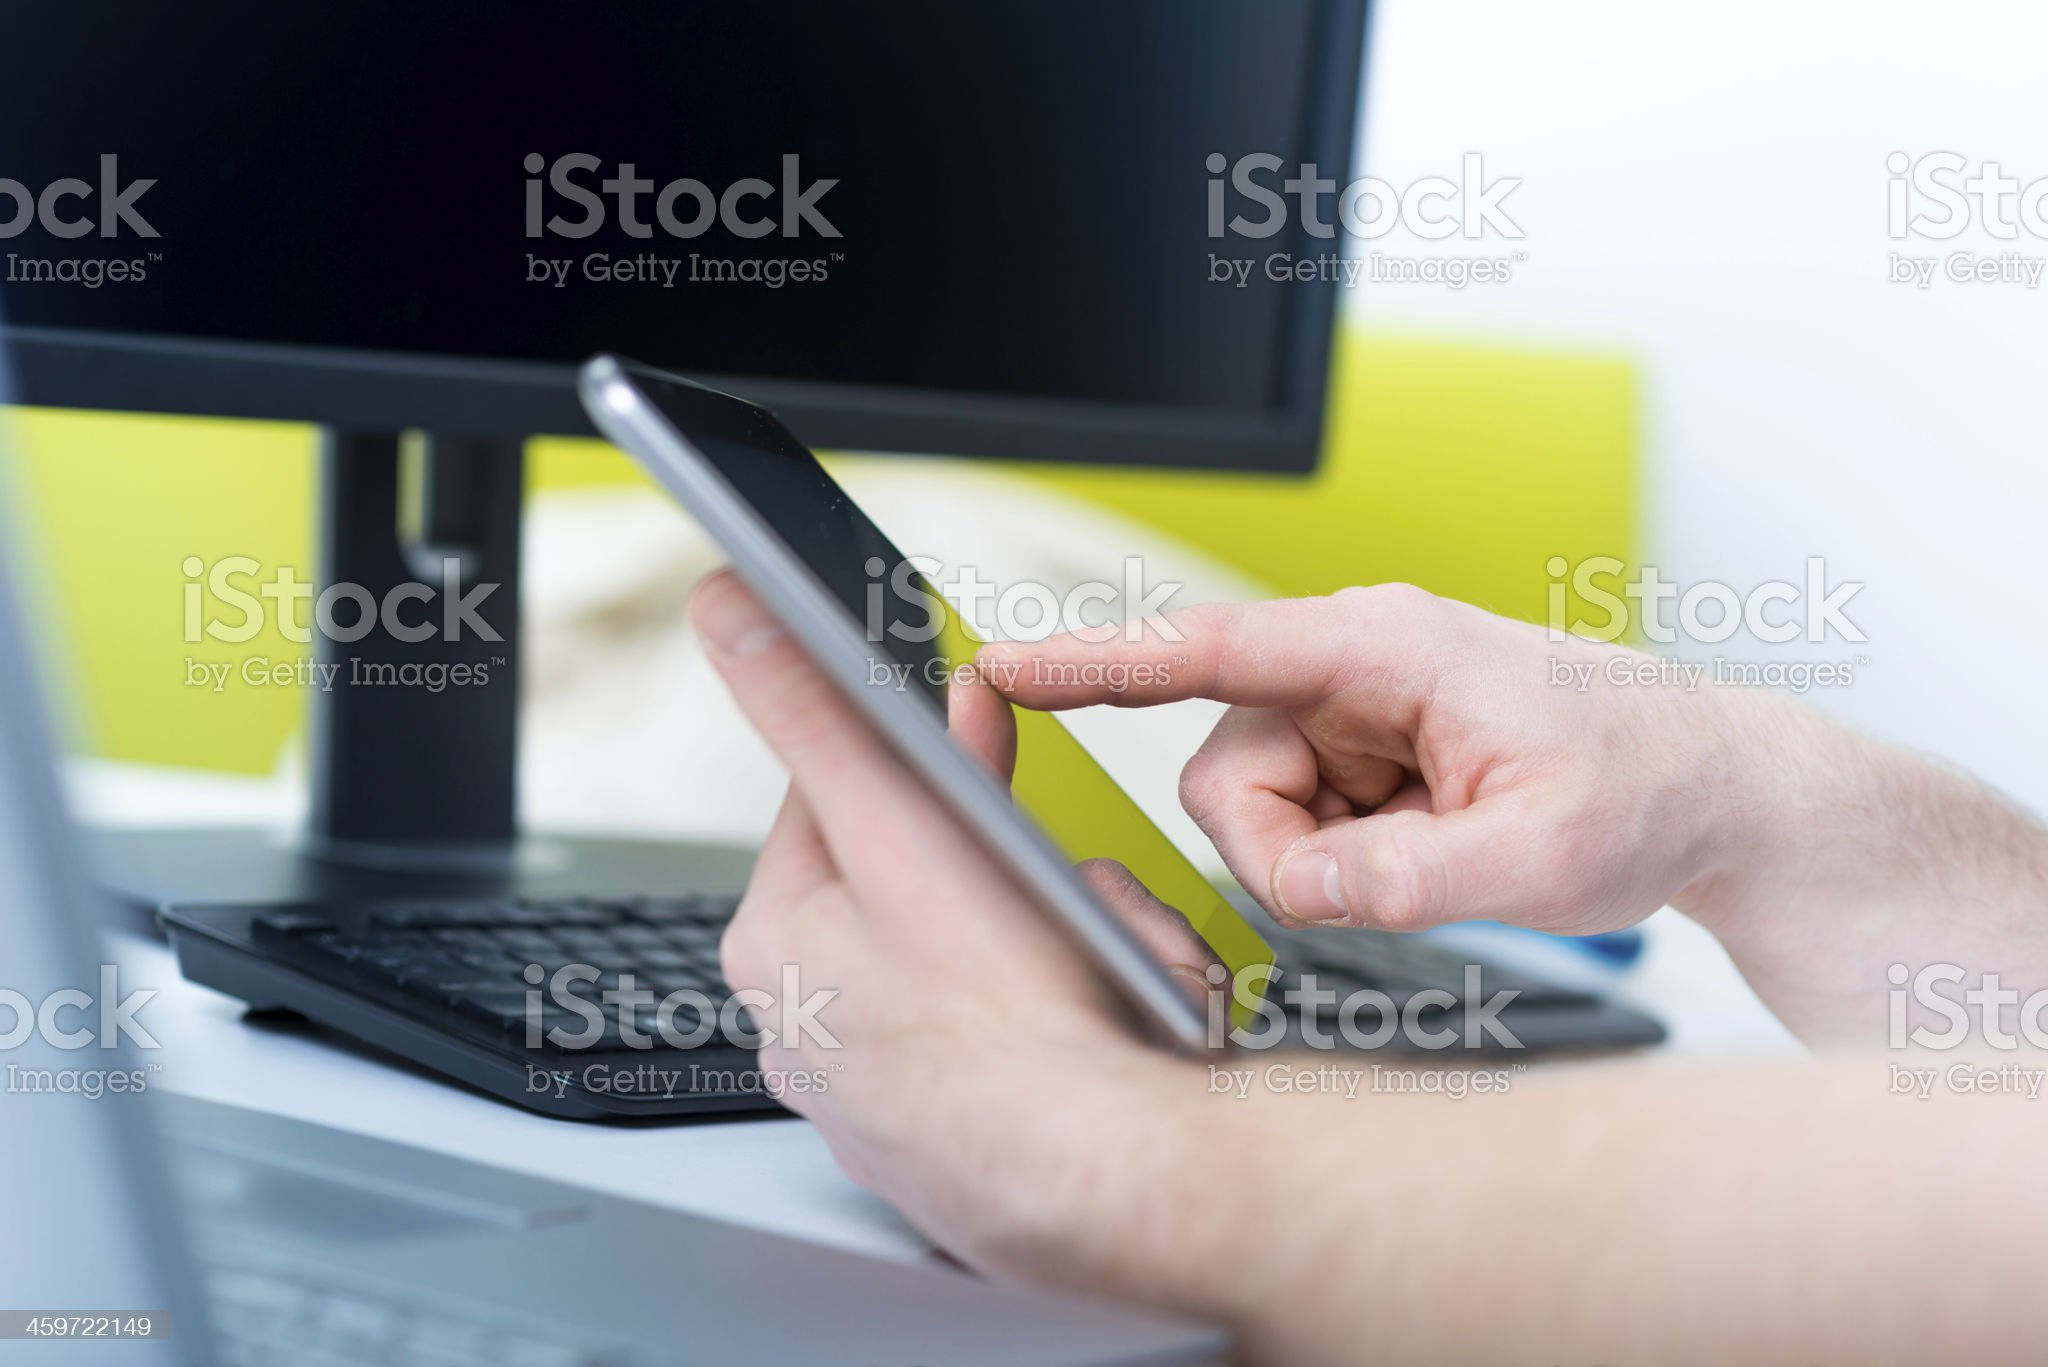 Touching Screen On Tablet PC royalty-free stock photo